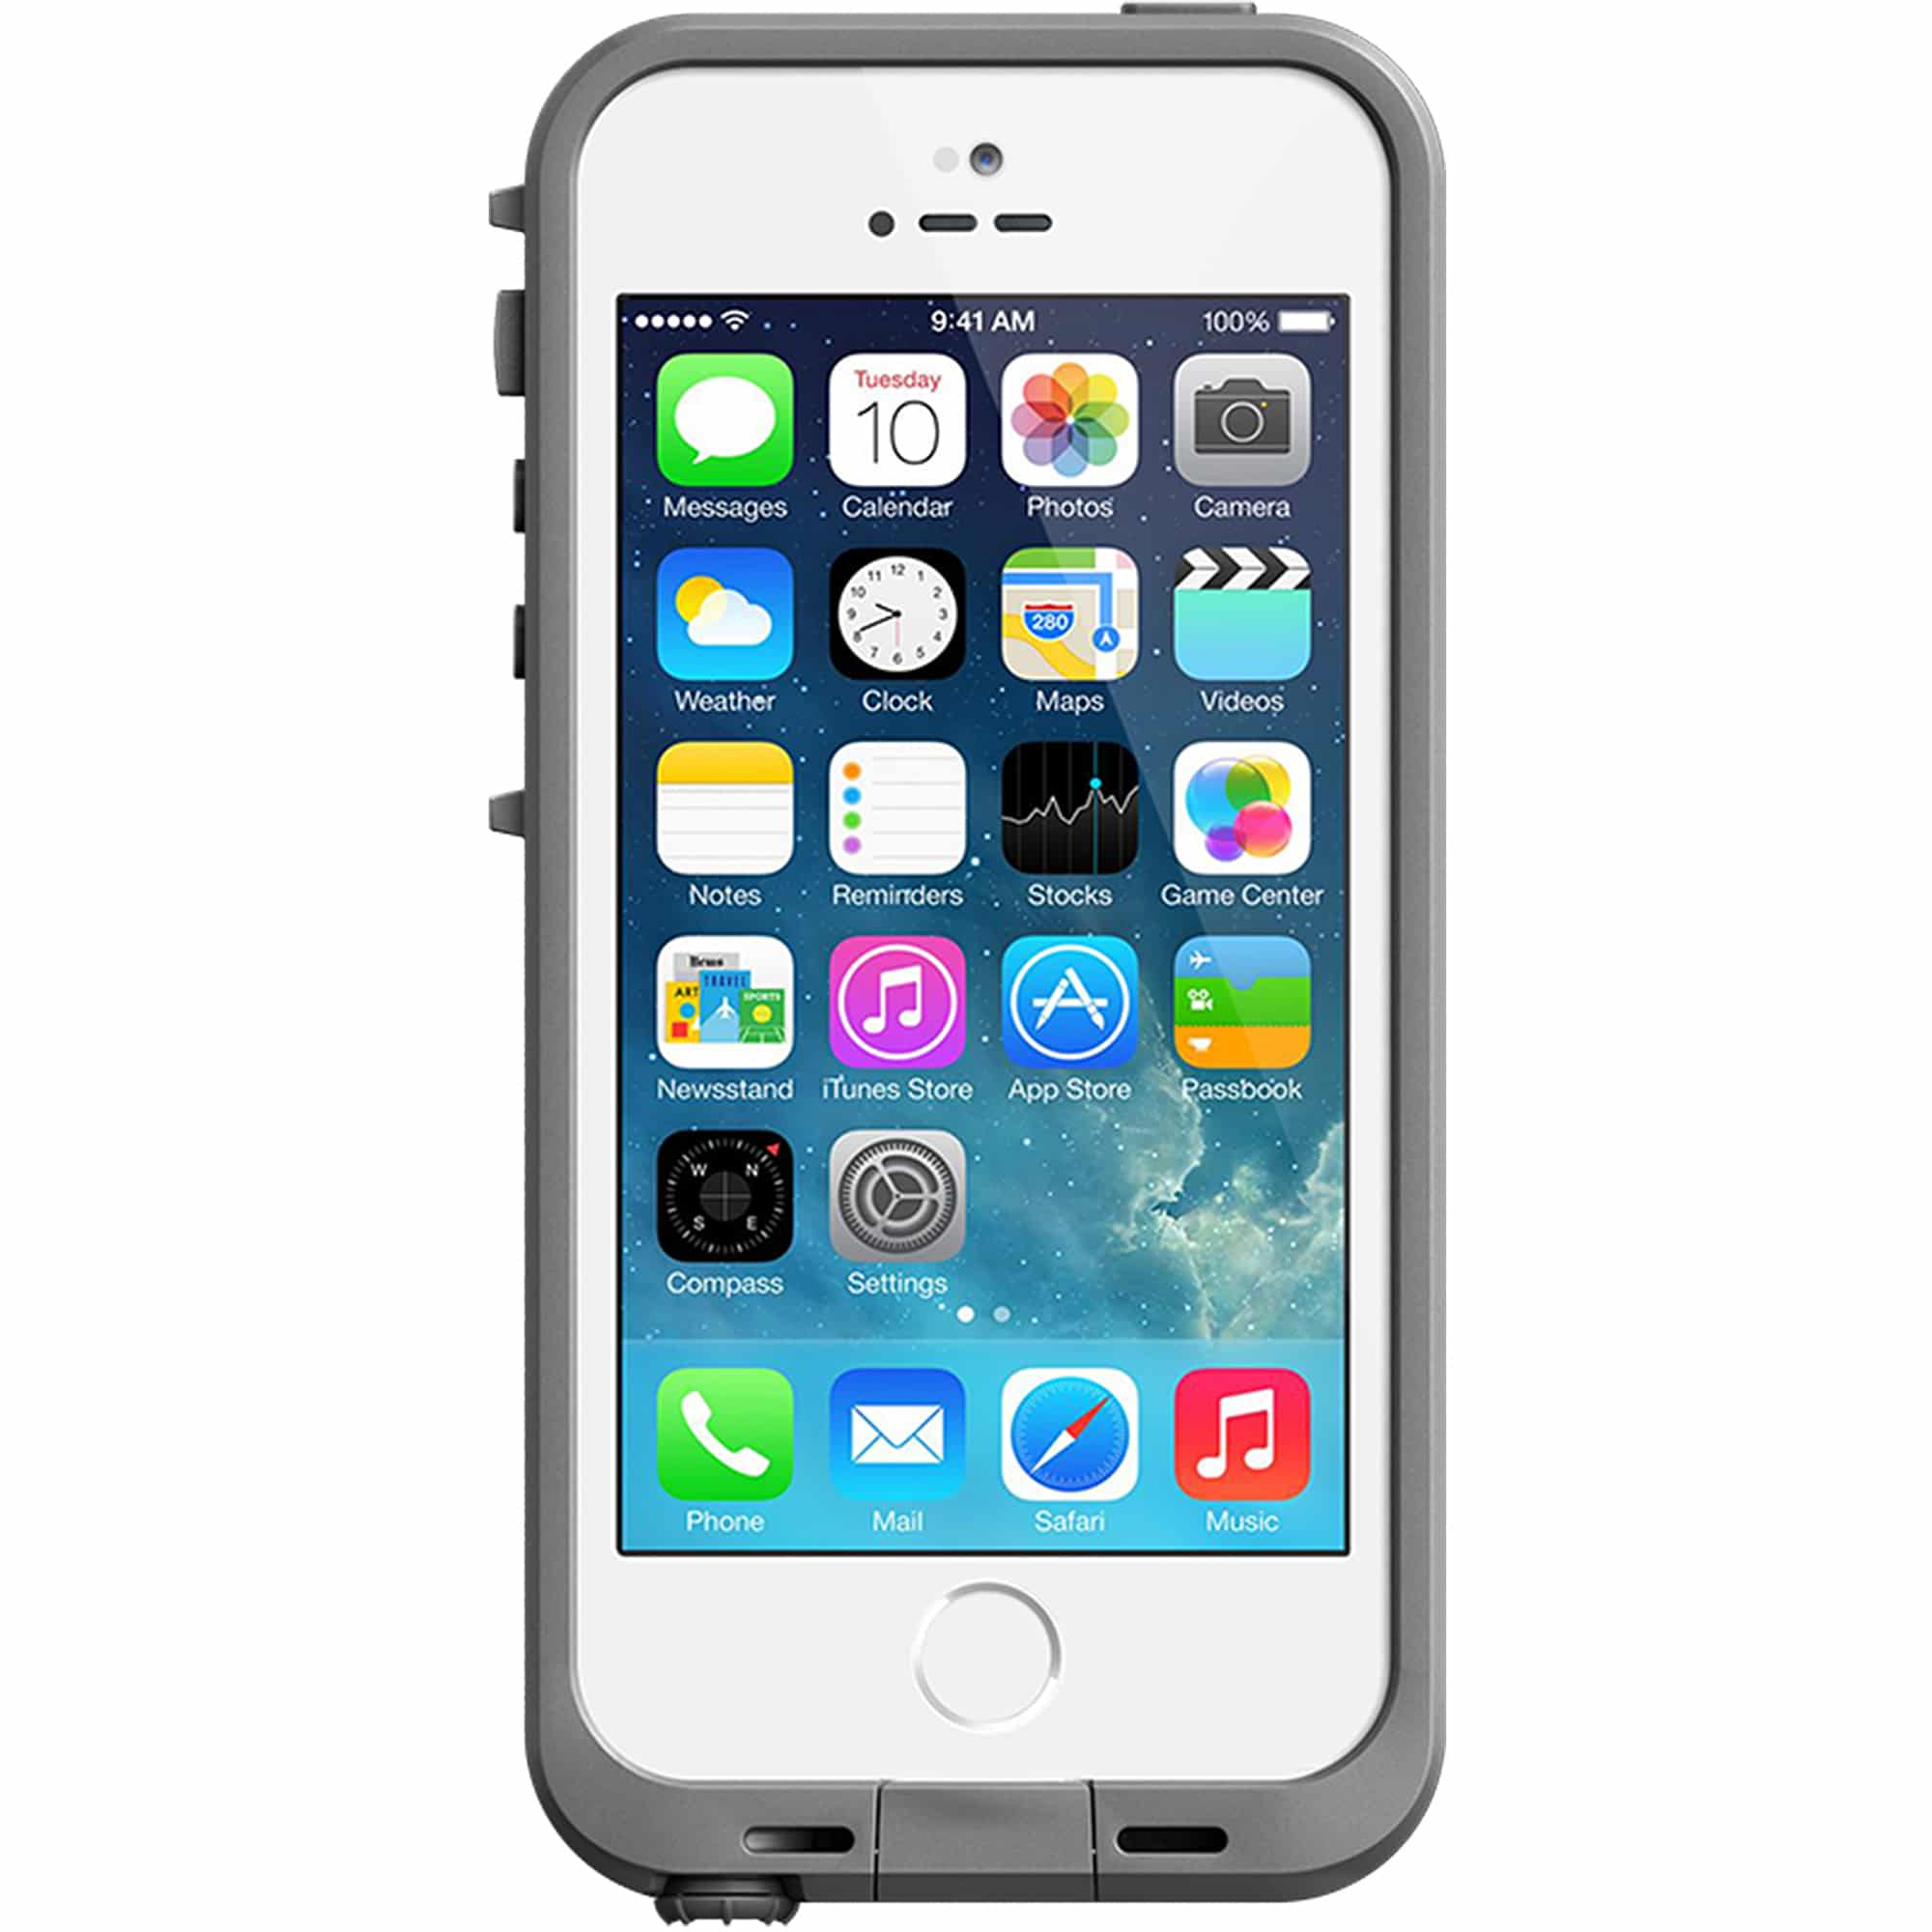 What to pack for monsoon travel - LifeProof waterproof phone case